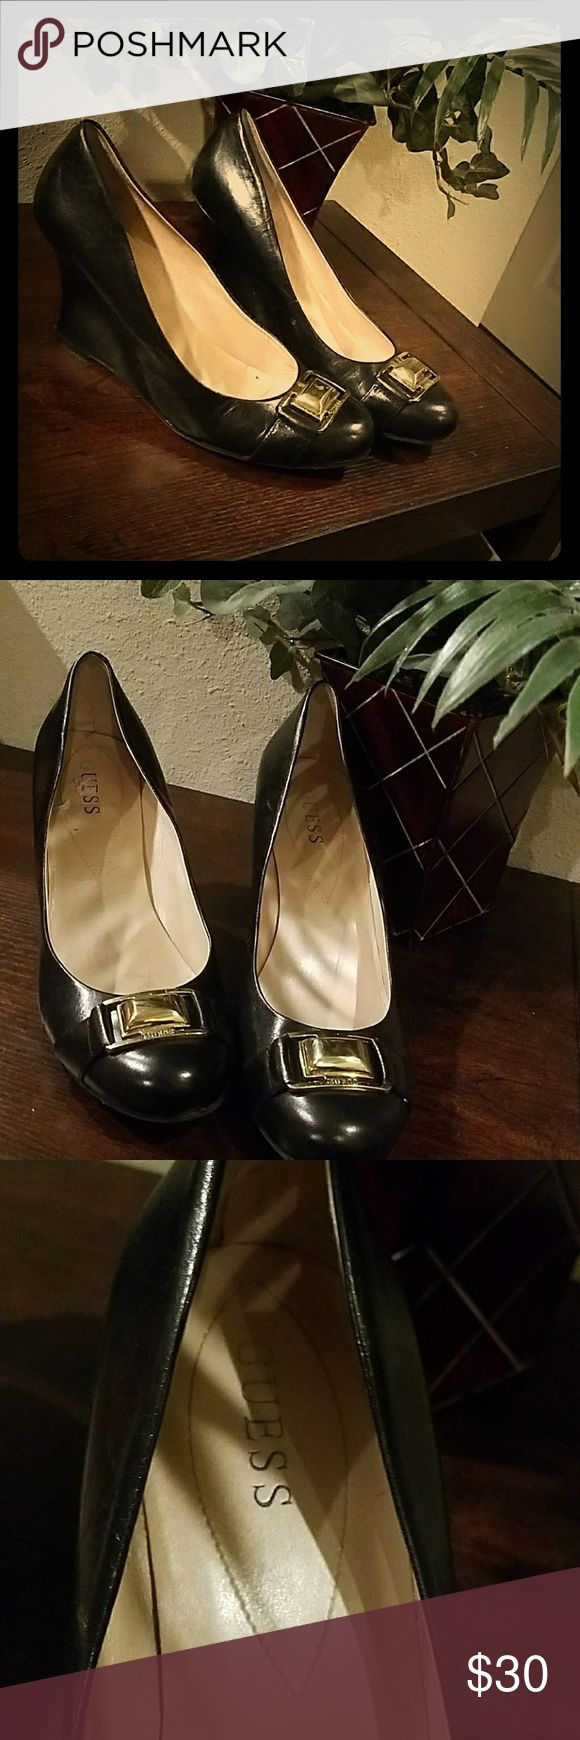 Guess Wedges Black Size 10 Guess Wedges. Size 10. Black with gold emblem on toes. Closed toe. Wedges are 3.5 inches high. Guess Shoes Wedges